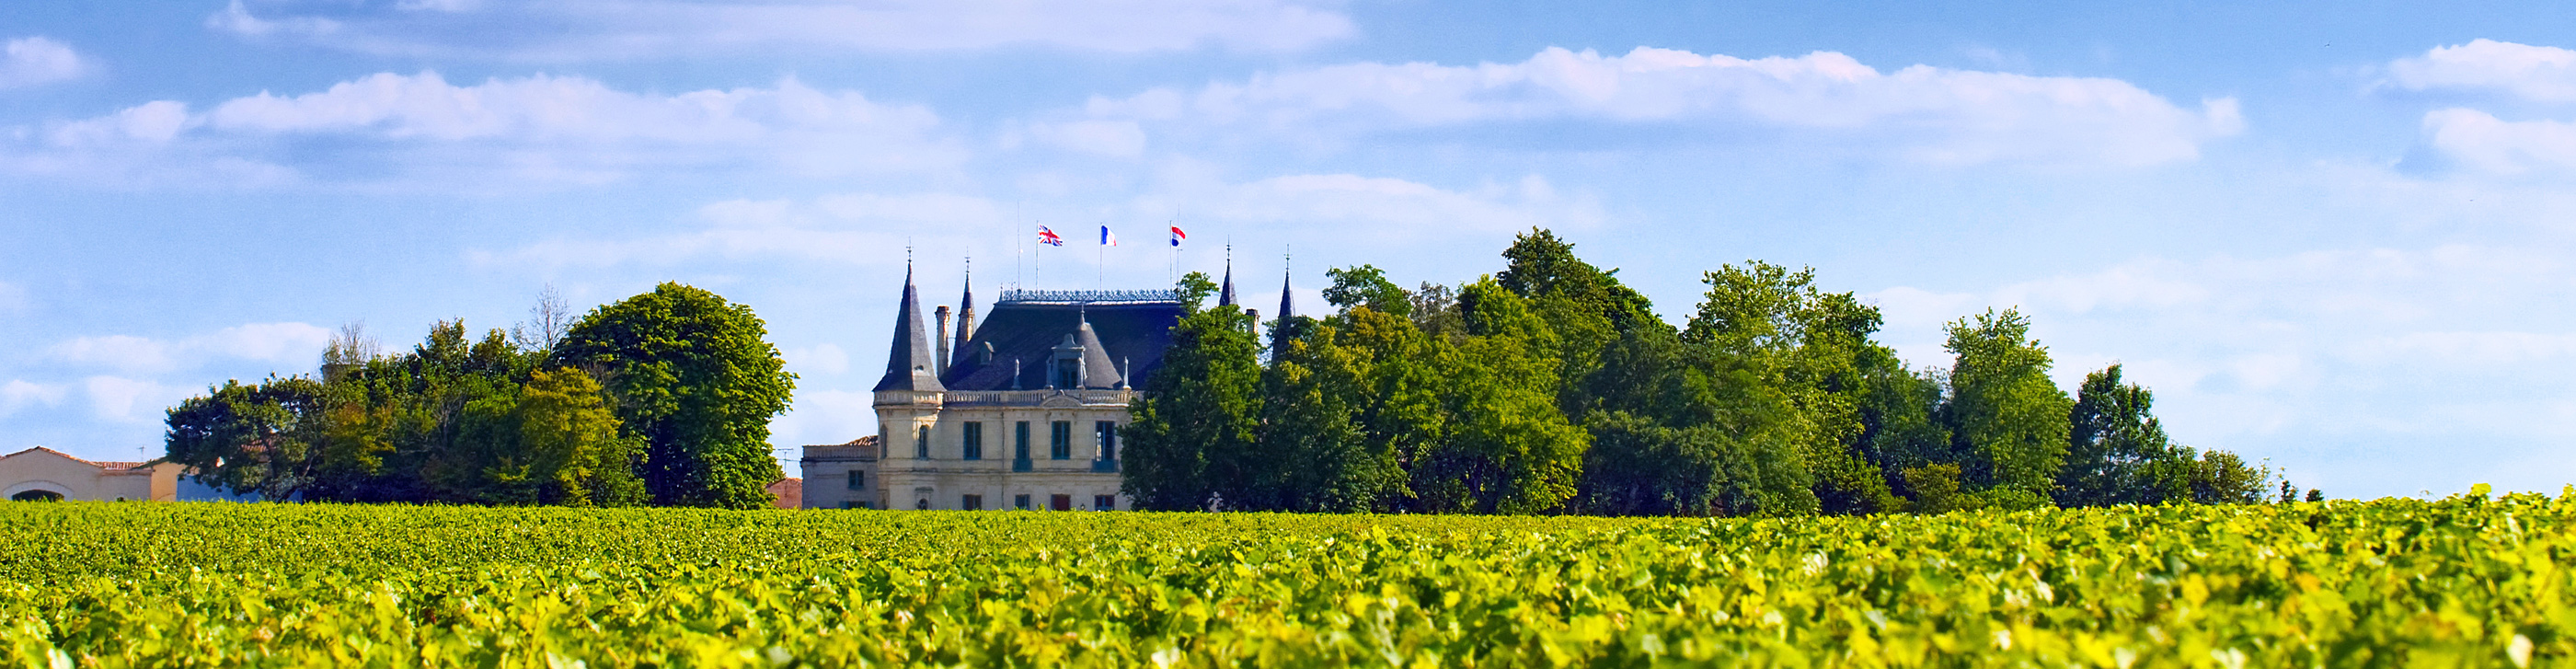 Bordeaux vineyards chateaux Dordogne Garonne rivers France